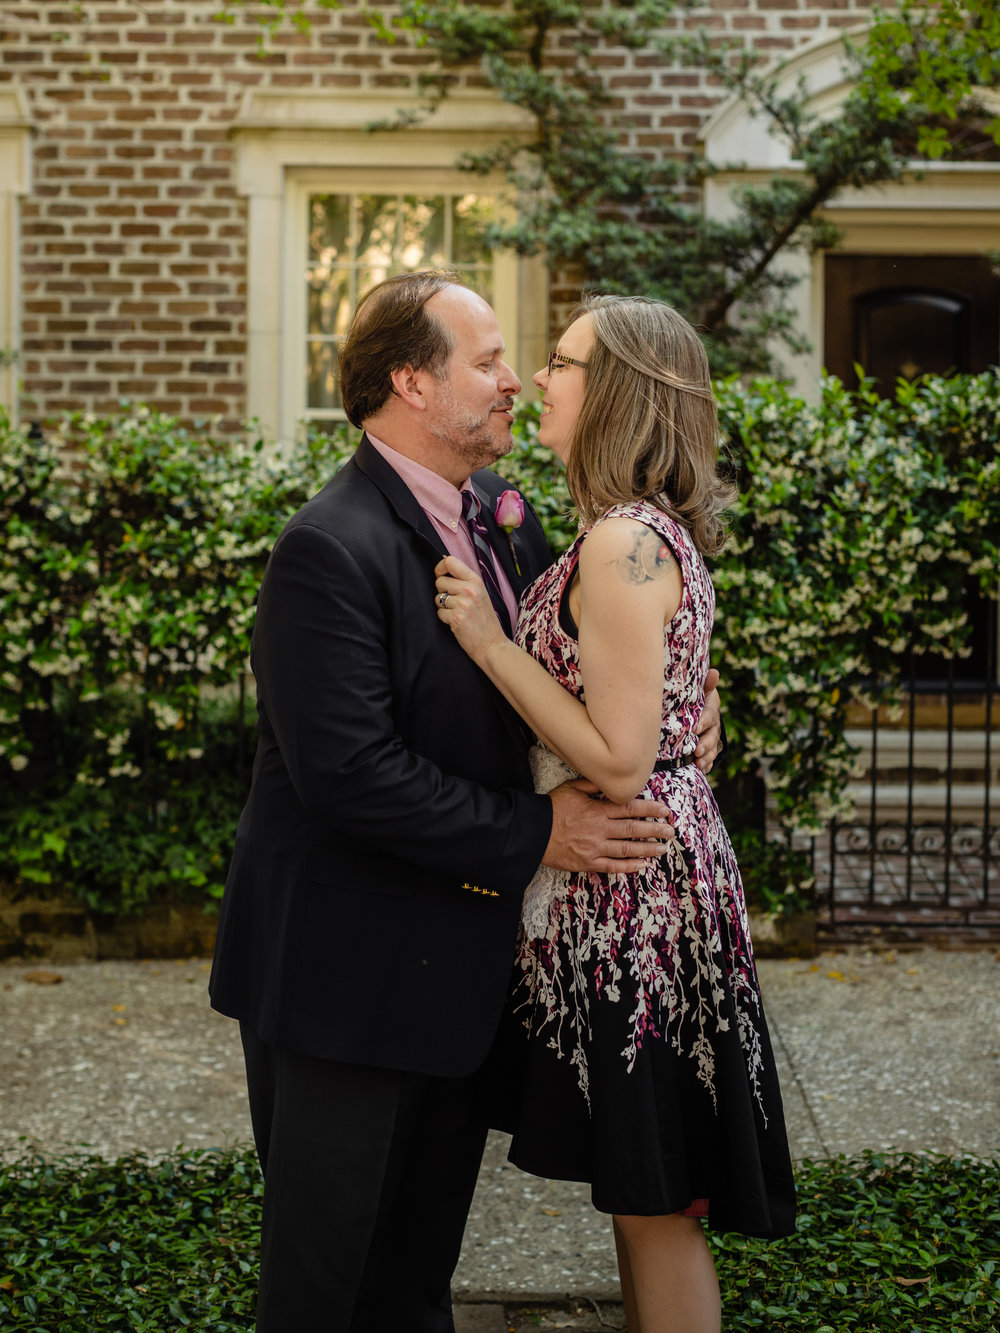 savannah elopement parish photo co elope savannah service square downtown brei olivier 15